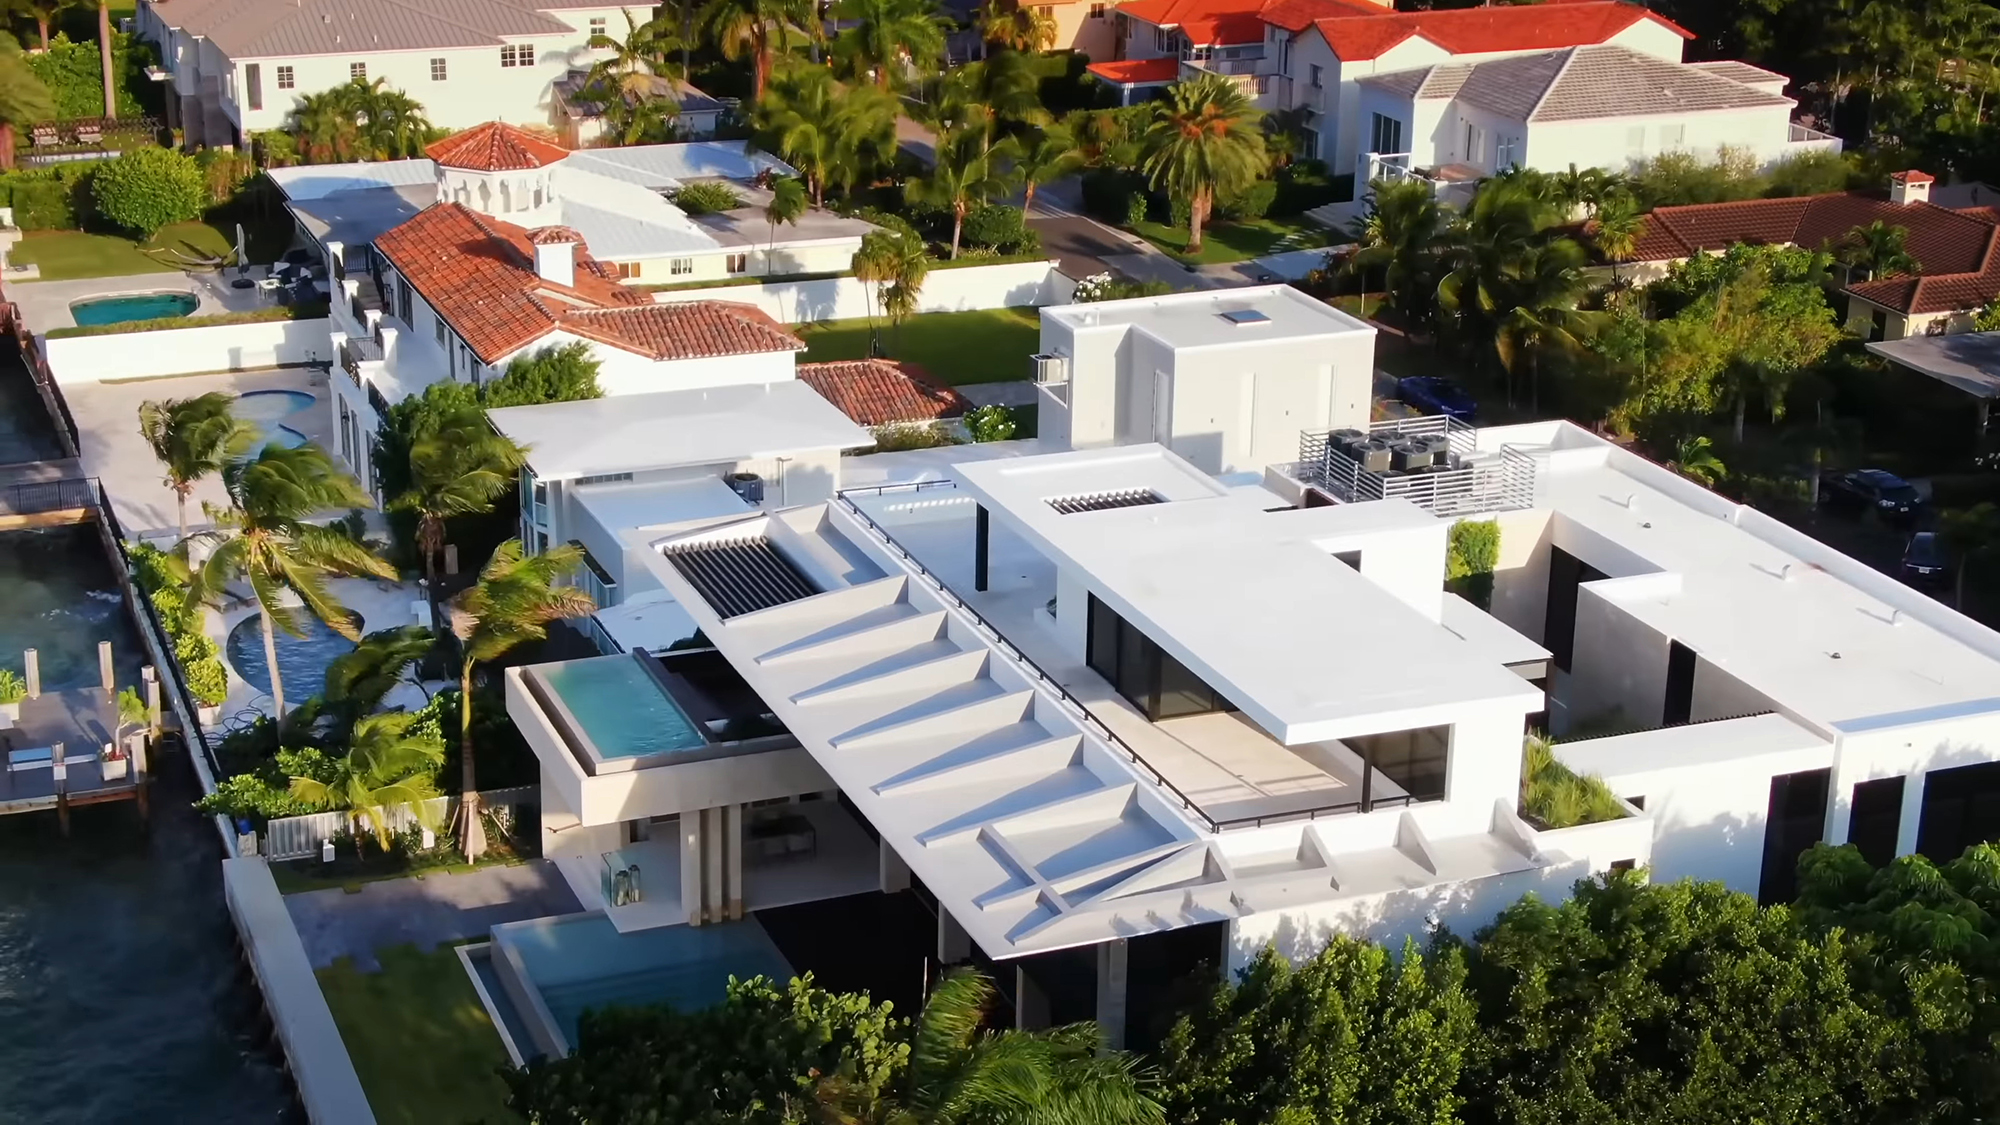 Aerial view of this beautiful flat roof custom modern home that includes a smooth fiberglass finish with built in planters, parapet walls and roof drains.